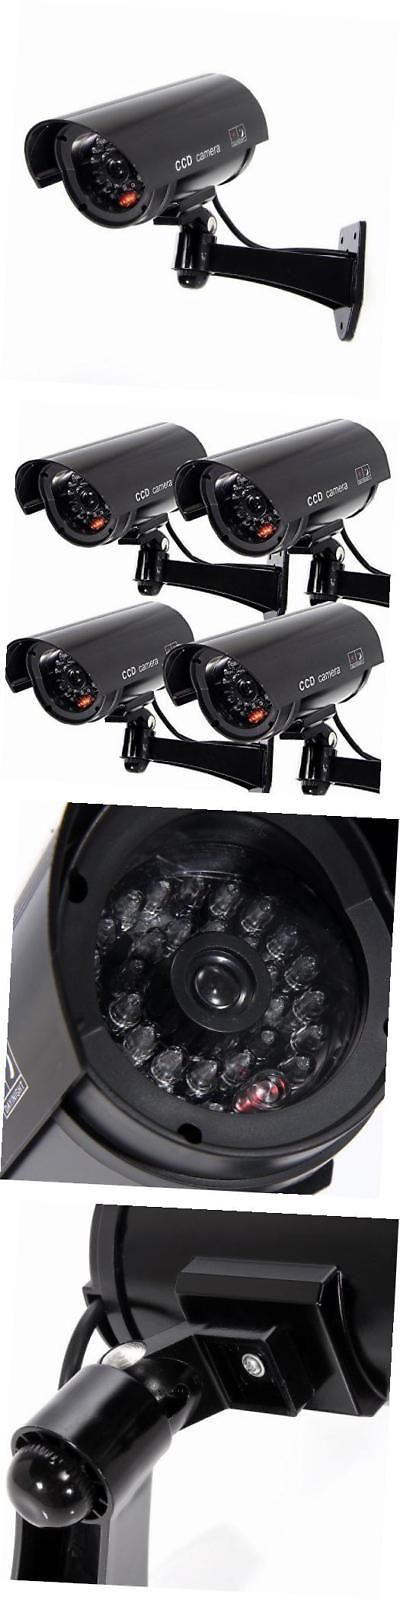 Dummy Cameras: Masione 4 Pack Outdoor Fake Dummy Security Camera W Blinking Light Cctv -> BUY IT NOW ONLY: $31.96 on eBay!